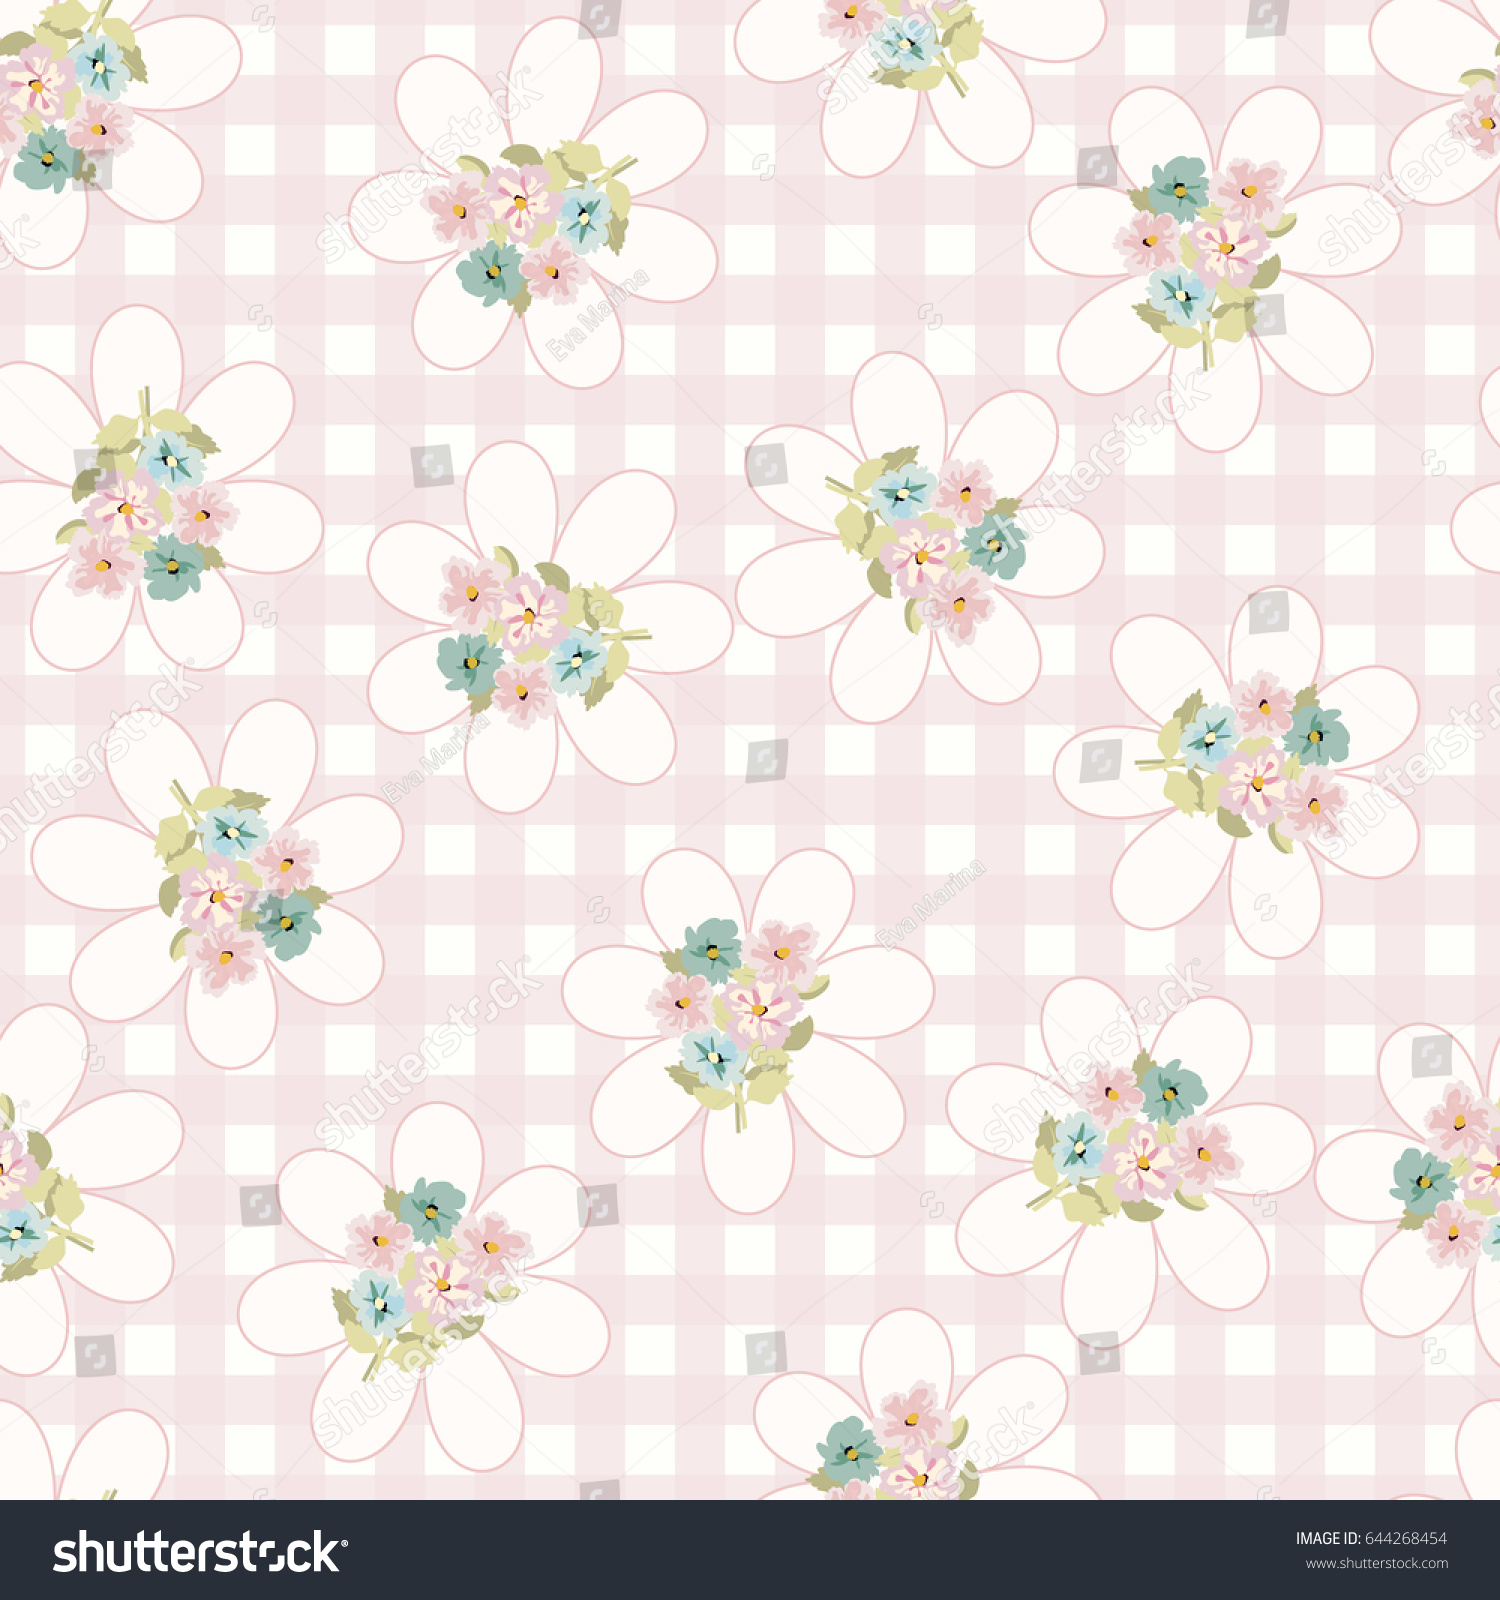 Vintage Feedsack Pattern In Small Pretty Flowers Floral Sweet